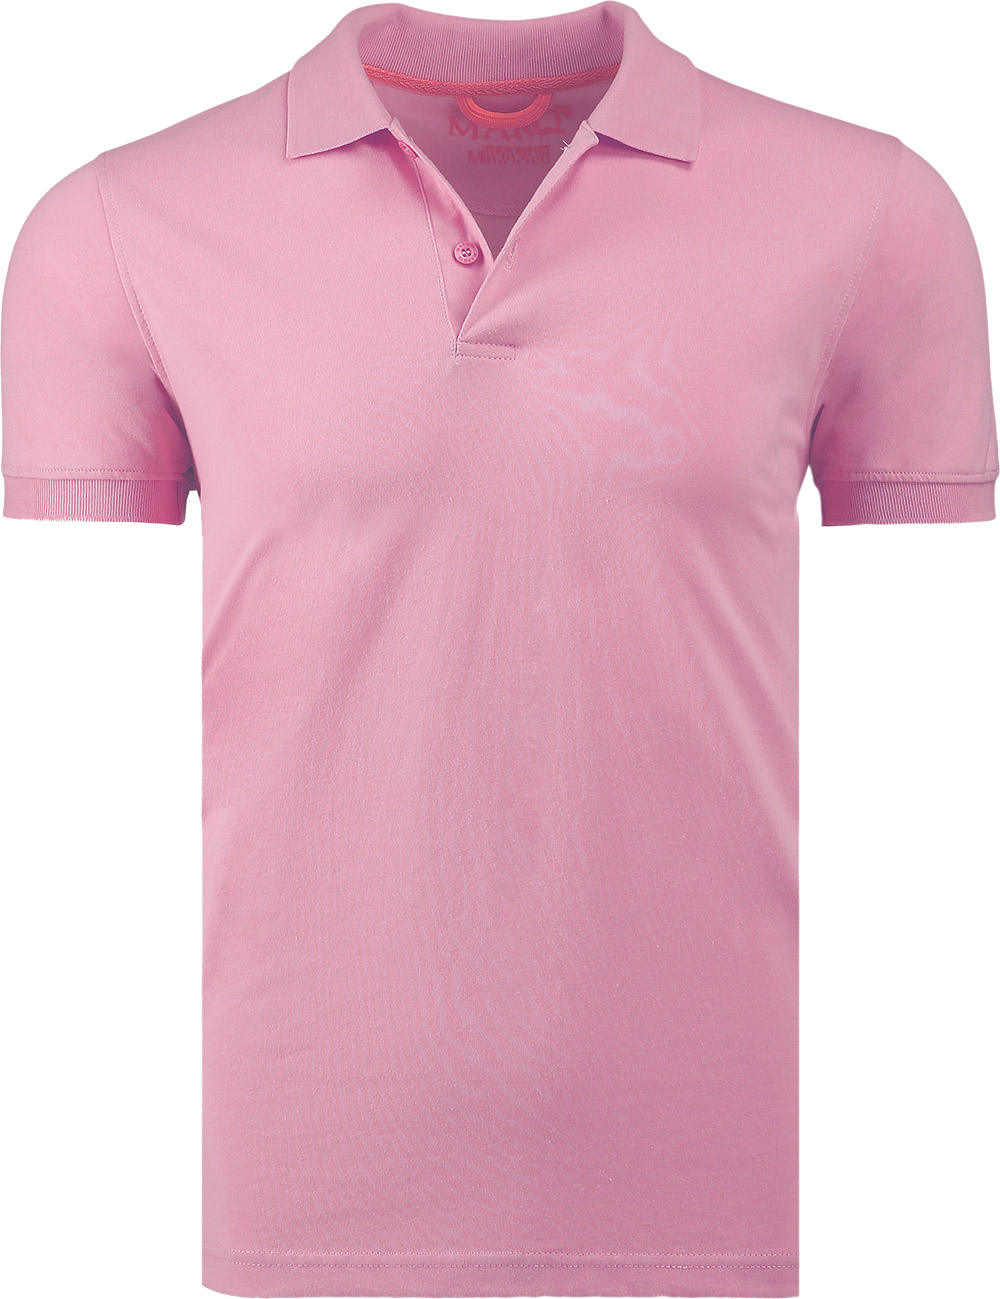 Pink *NEW*